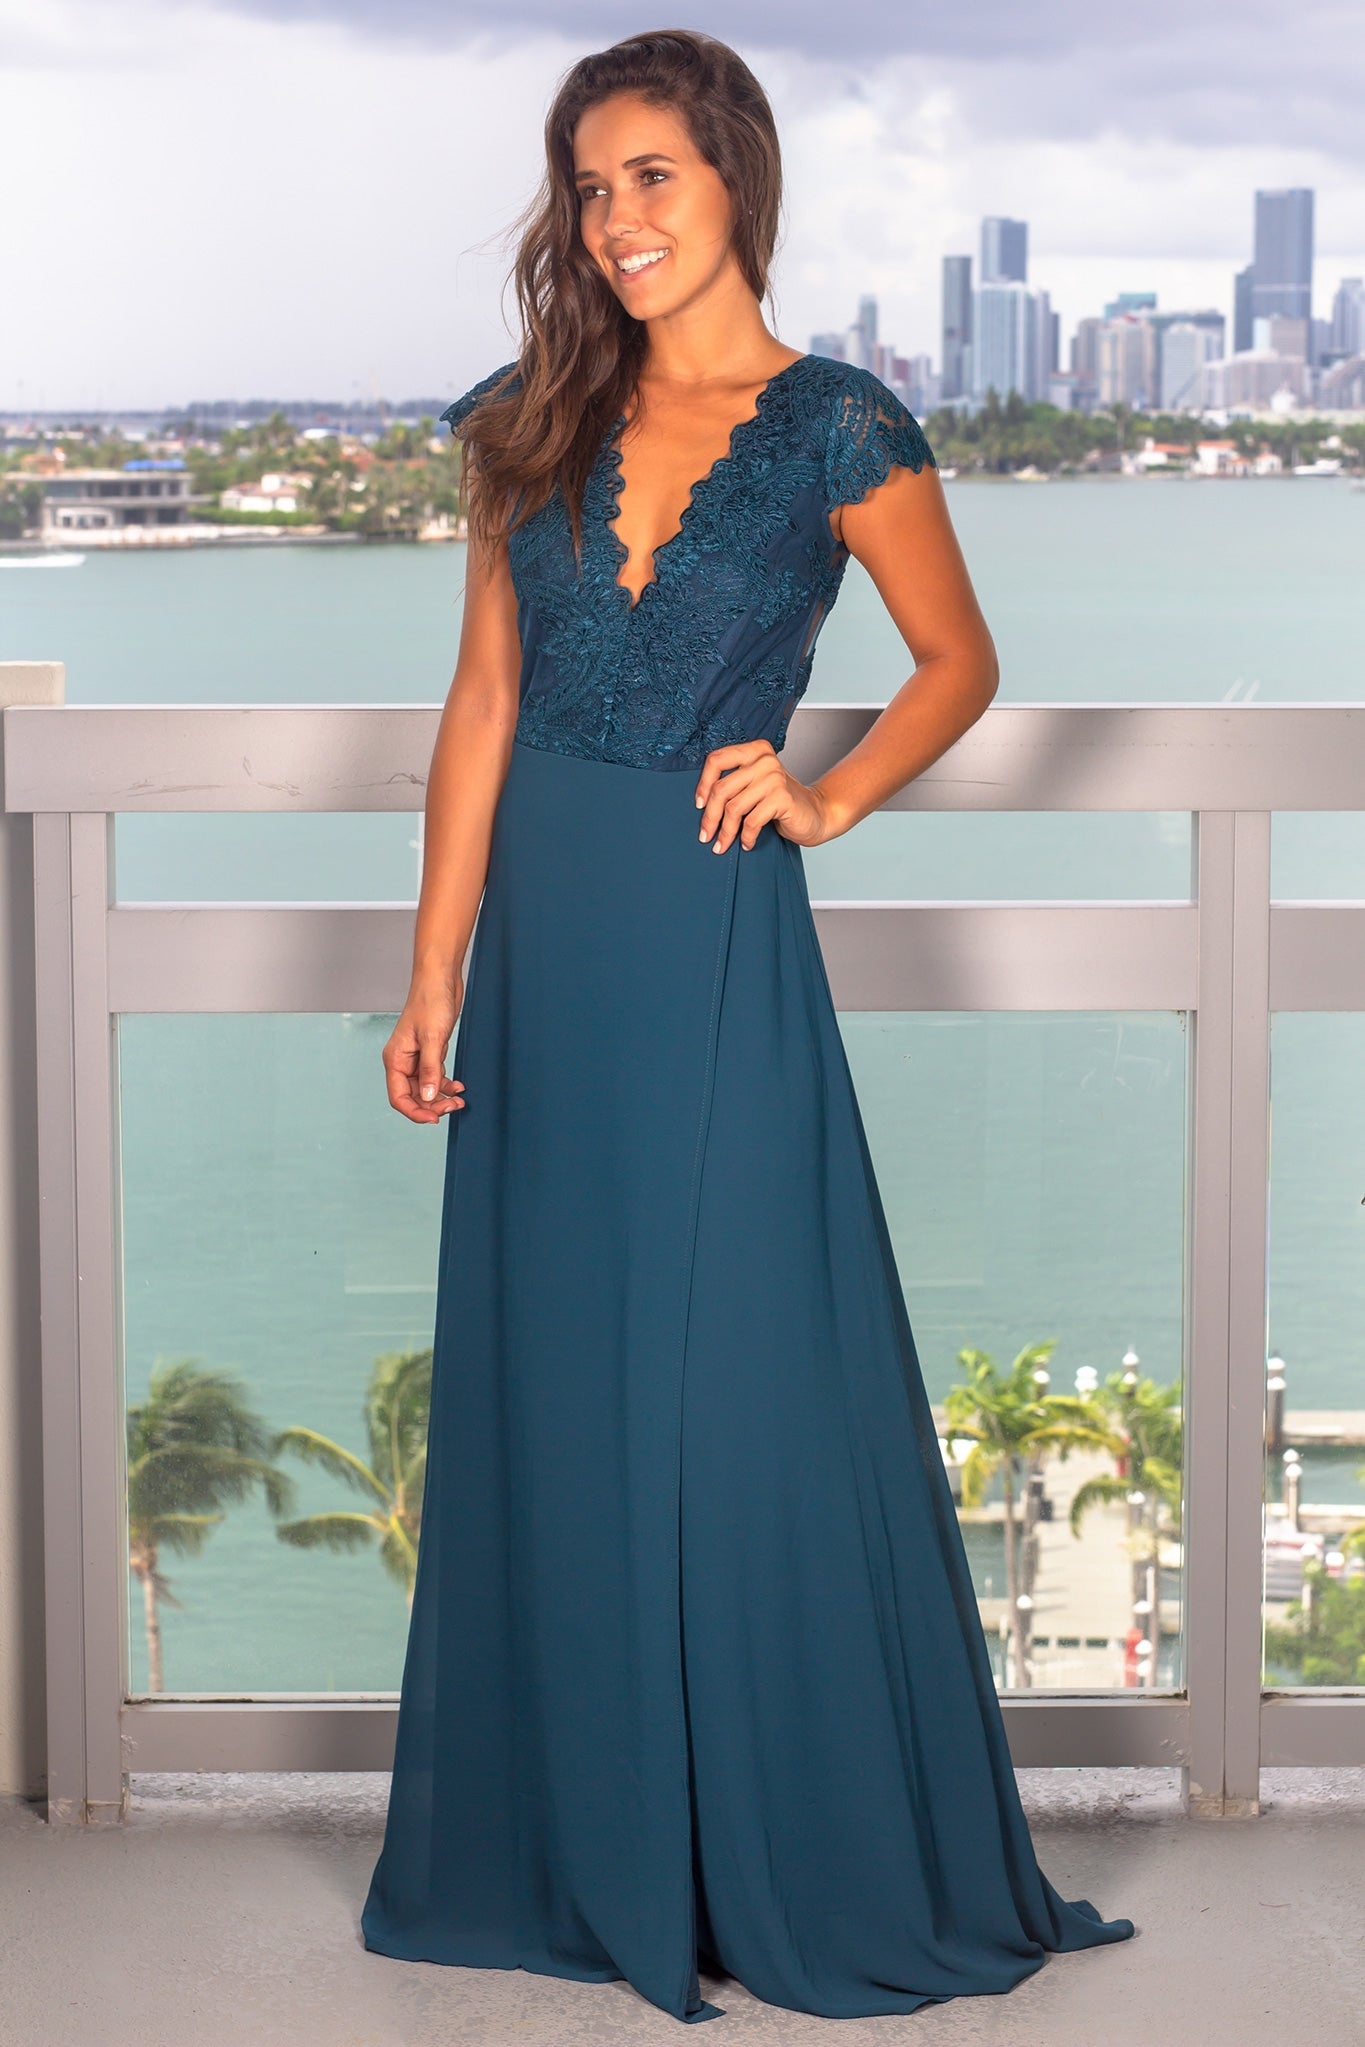 Teal Maxi Dress with Embroidered Top and Slit